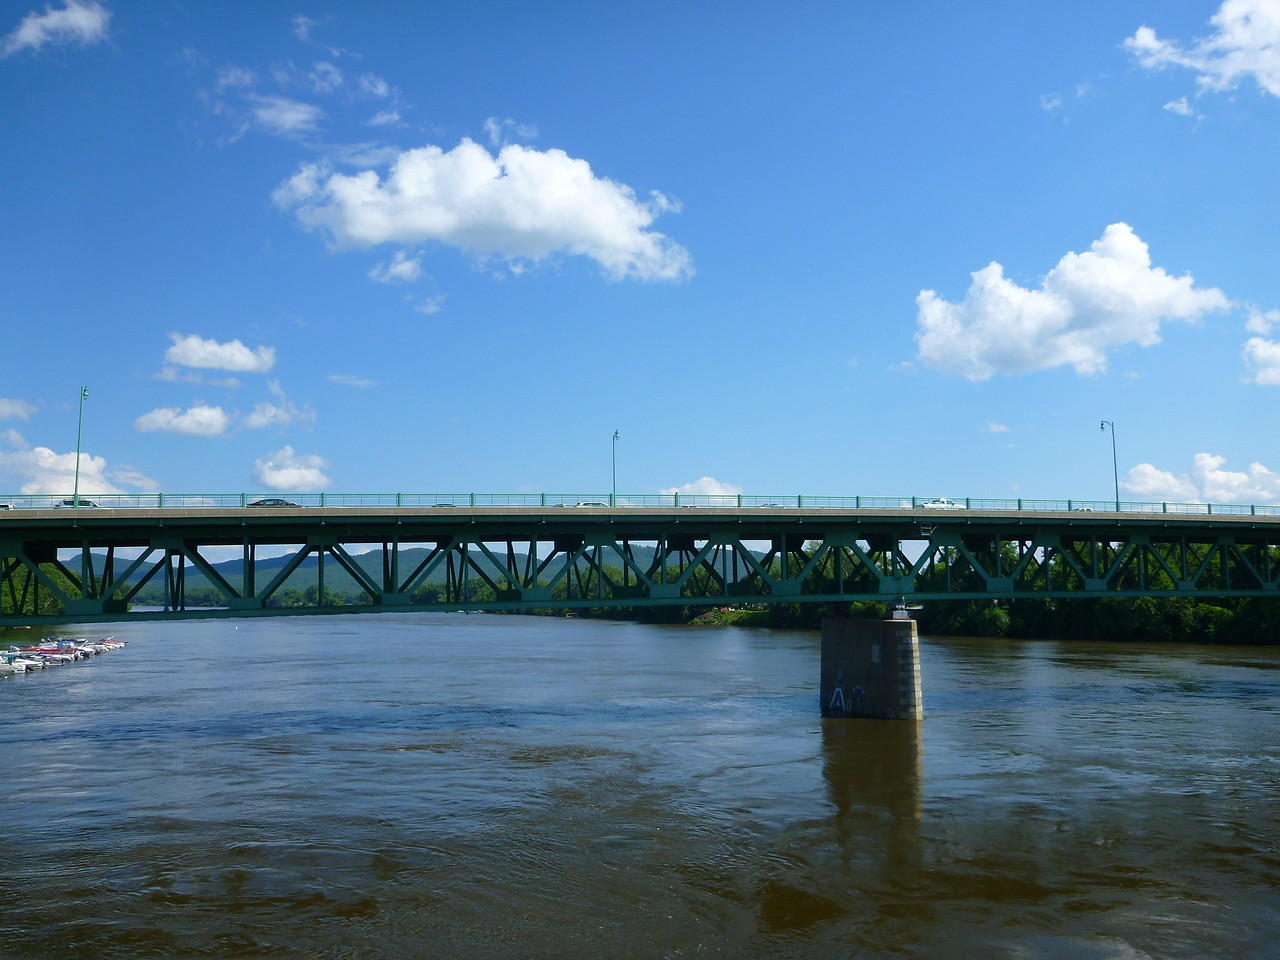 The Coolidge Bridge and the Connecticut